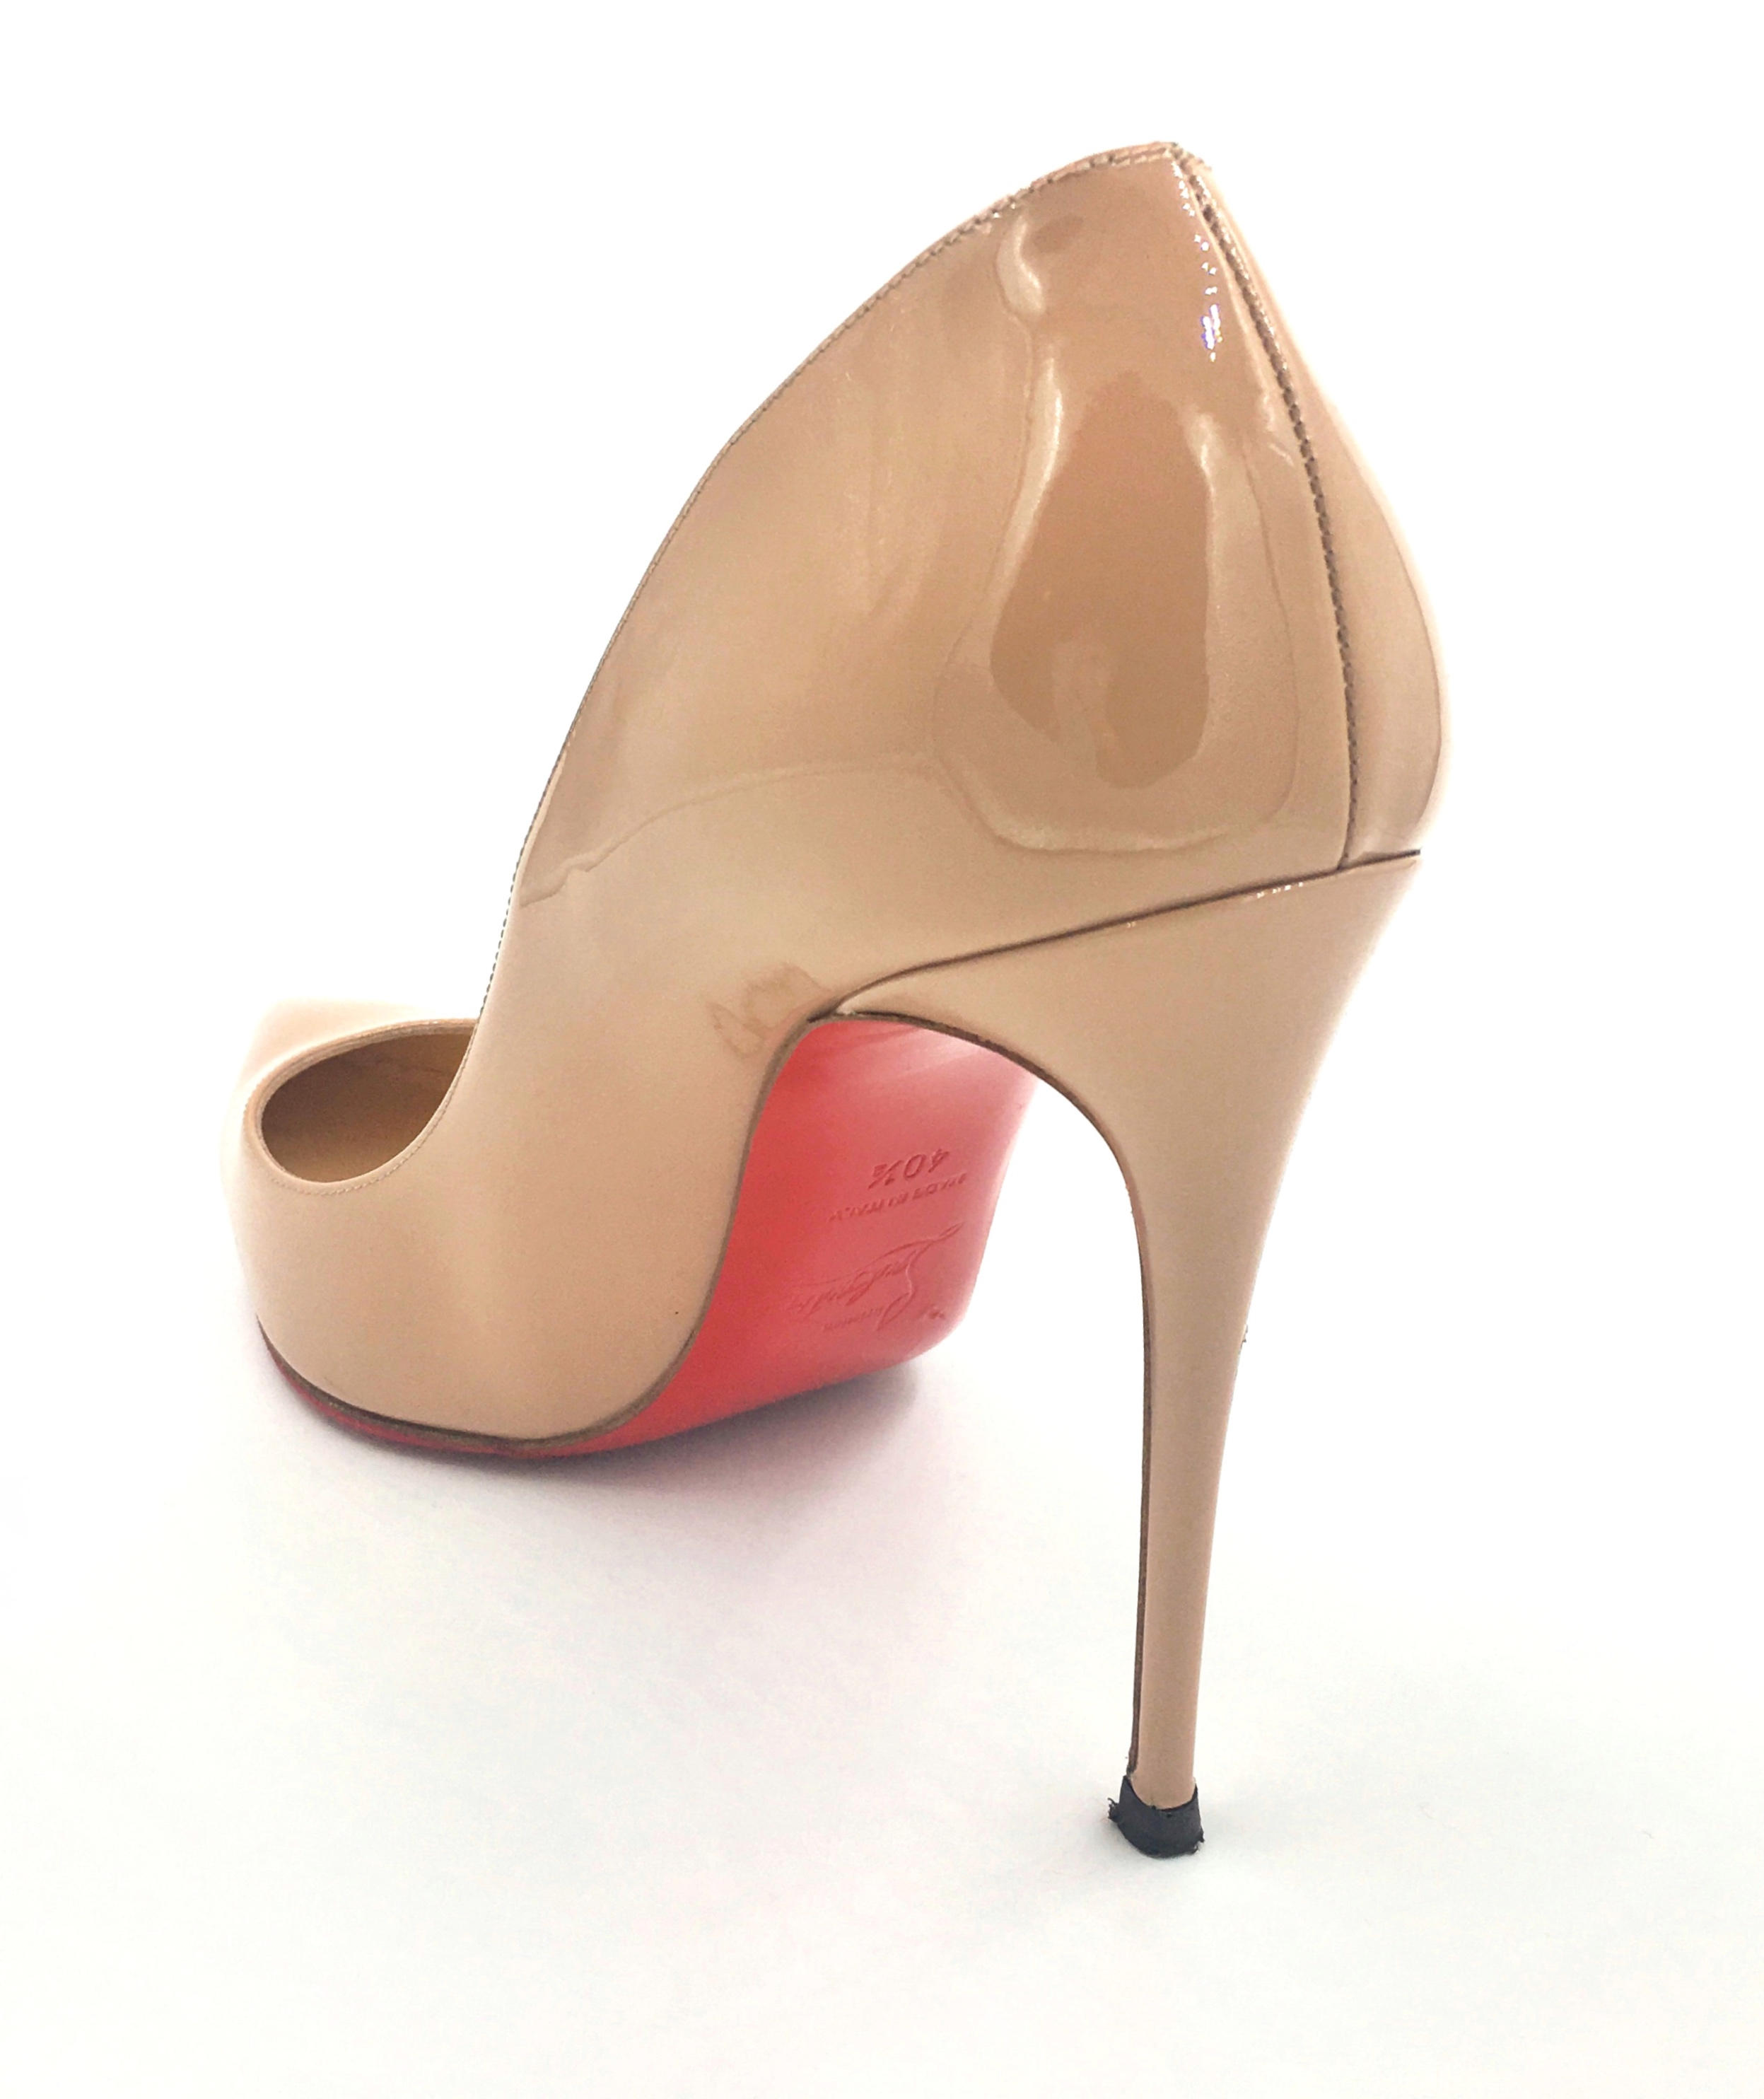 4a09da1f65b8 Christian Louboutin Pigalle Nude Patent Leather 100mm stilettos ...